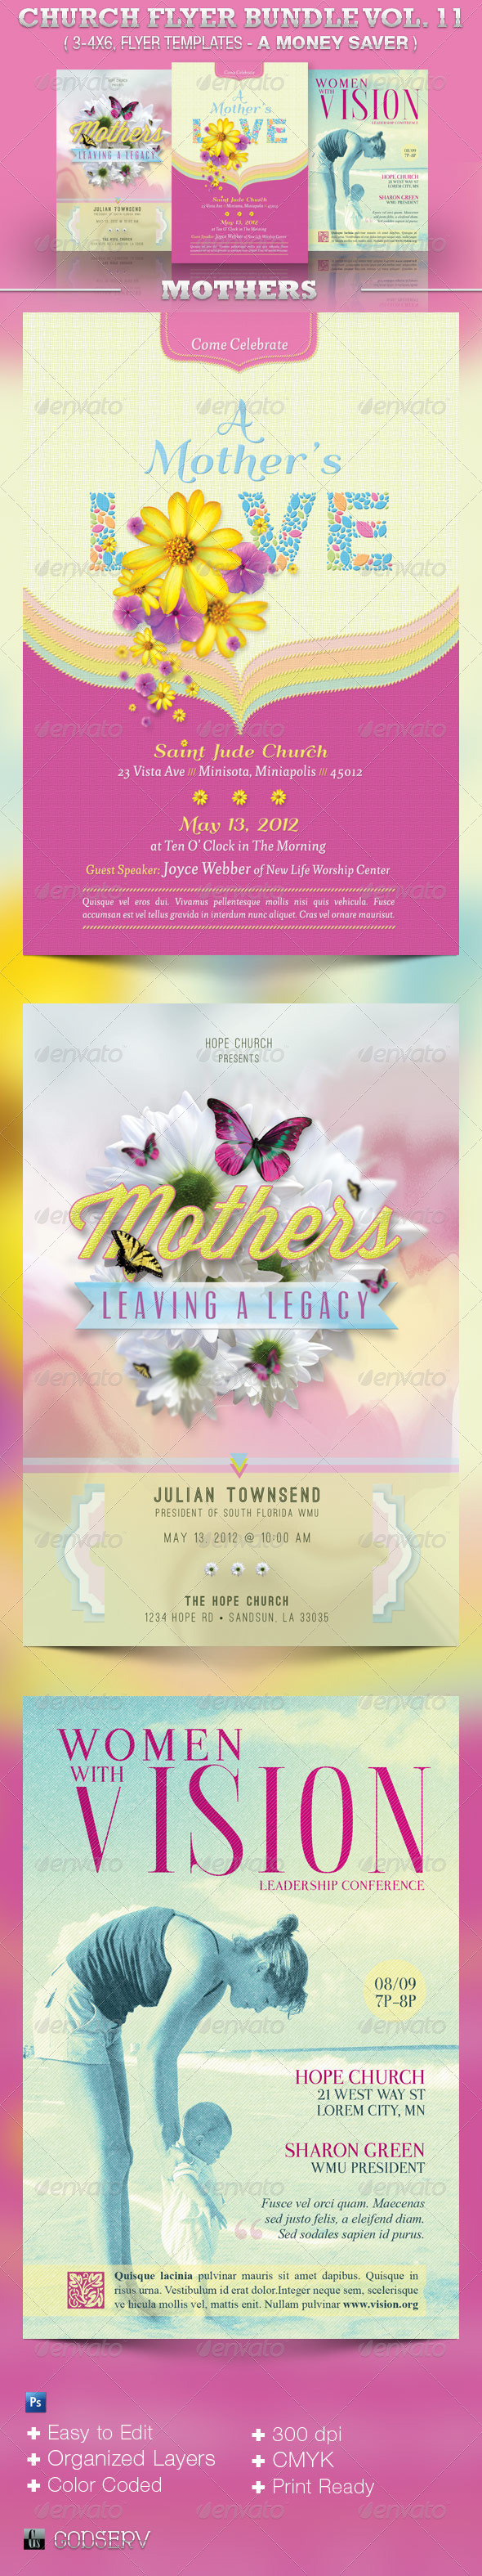 Mothers Church Flyer Template Bundle Vol 11 - Church Flyers